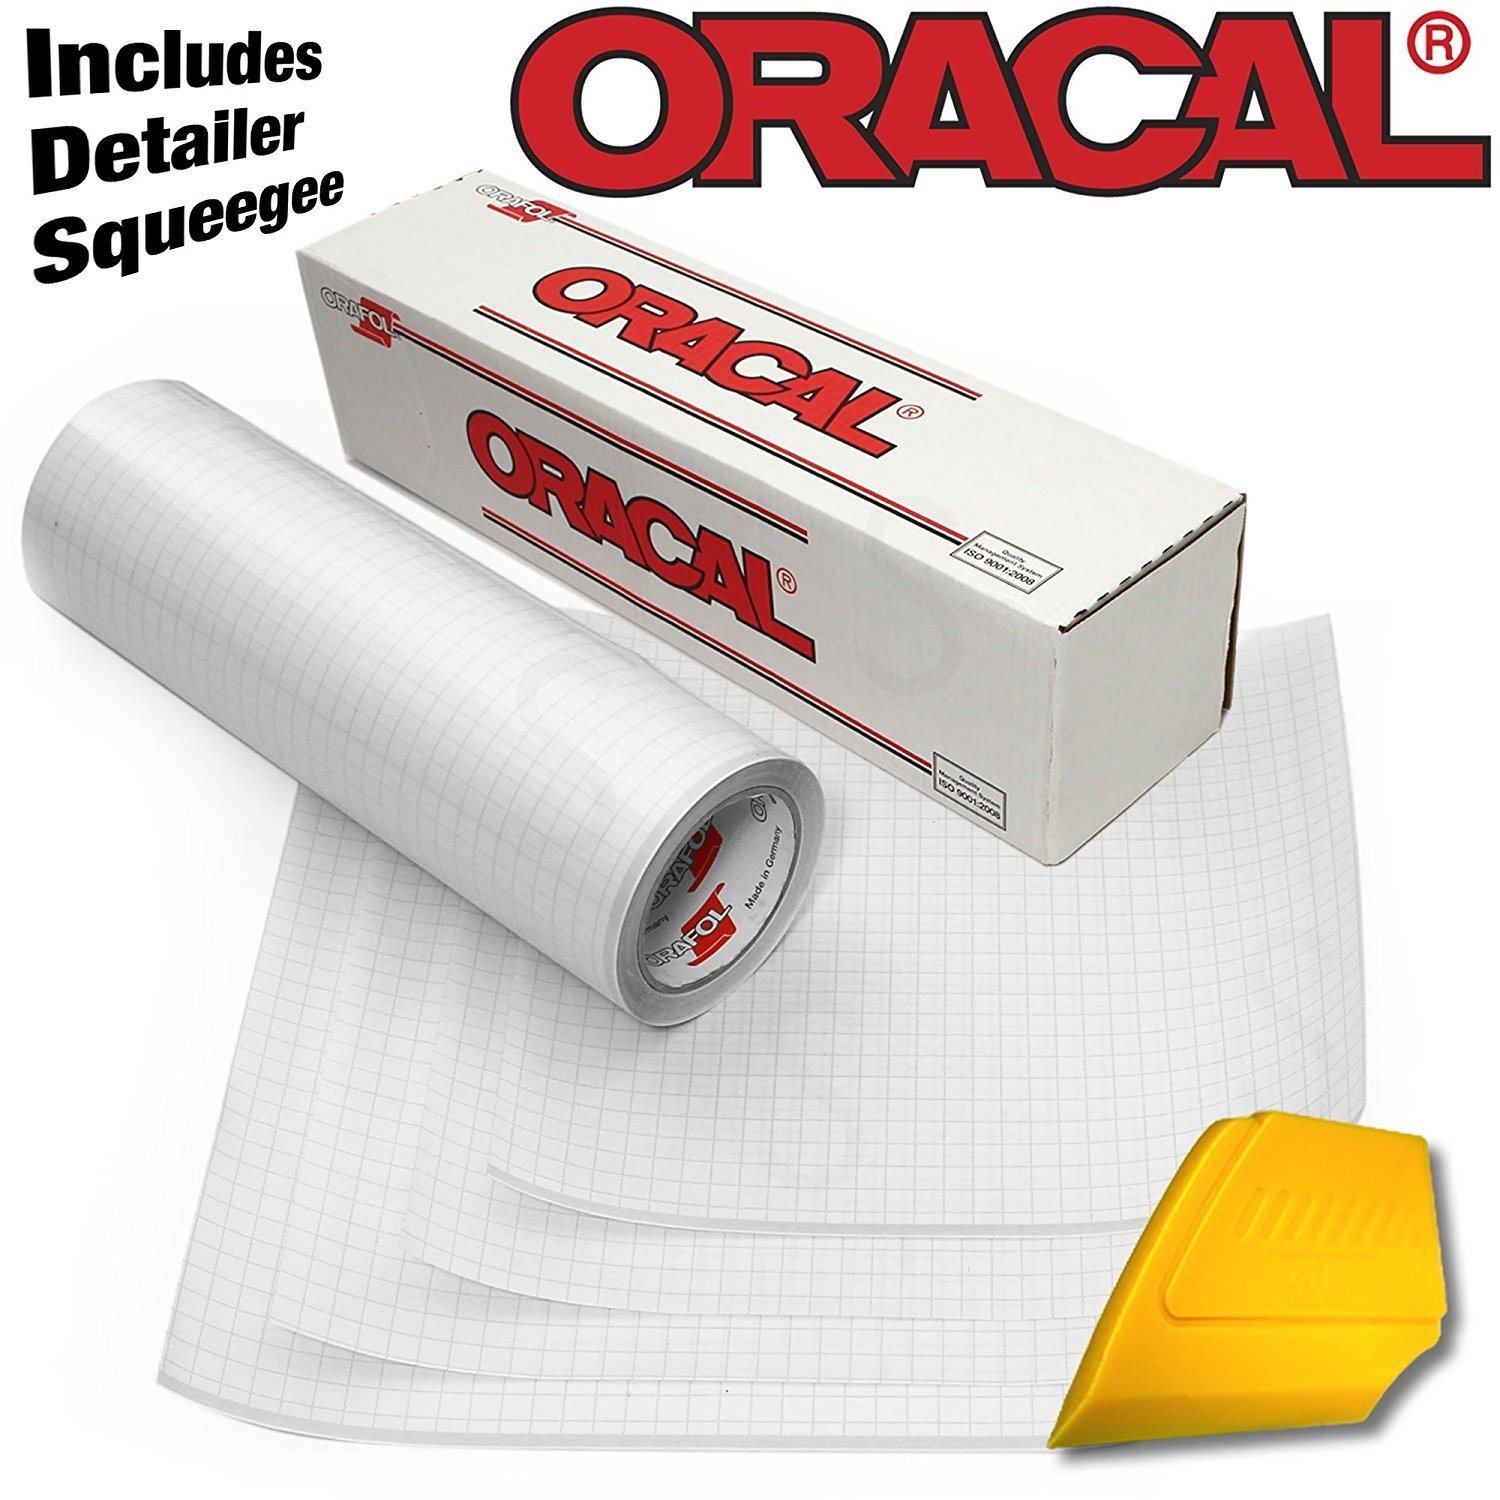 ORACAL Clear Transfer Paper Tape 15ft Roll w/ Hard Yellow Detailer Squeegee (12 x 15ft) 4336883242